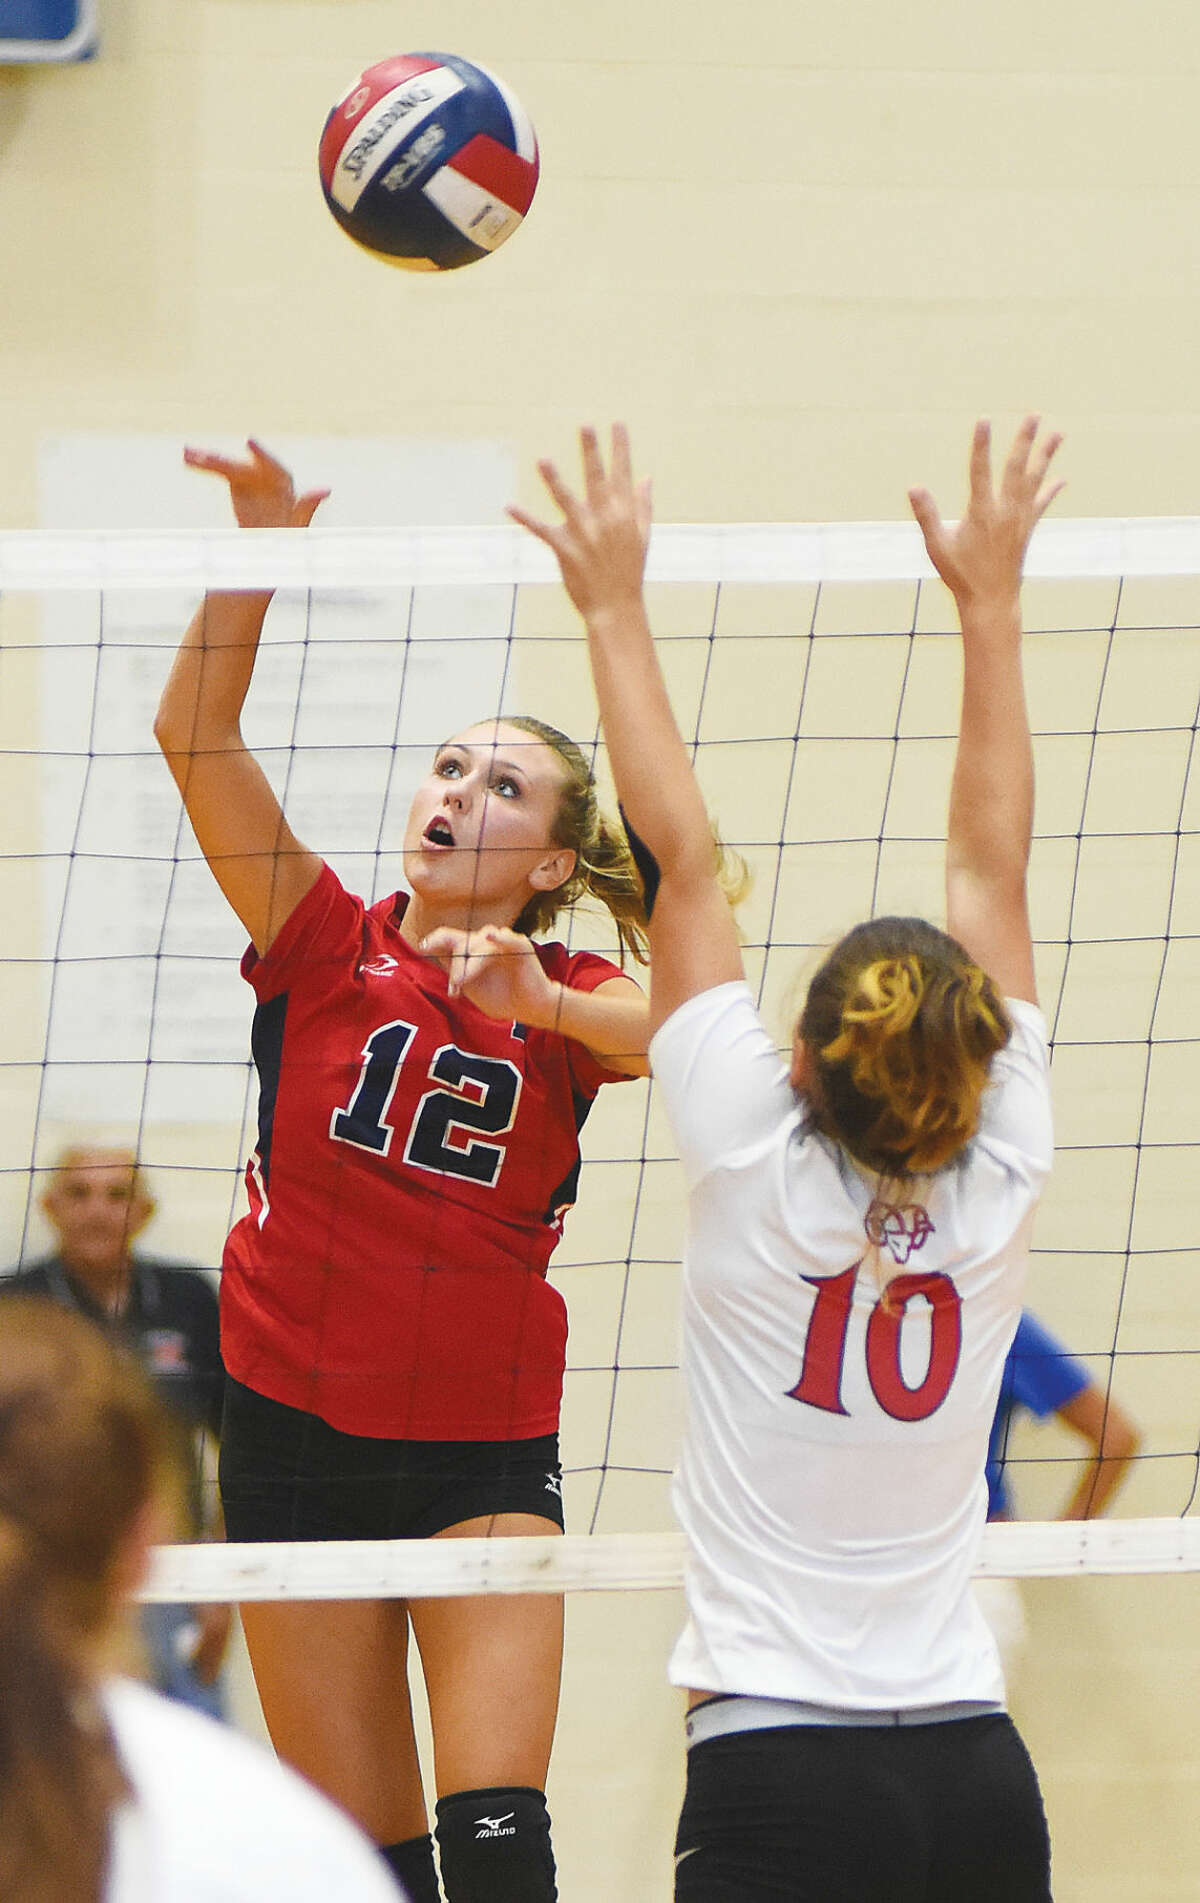 Hour photo/John Nash - McMahon's Taylor Morton (12) spikes the ball over the outstretched arms of New Canaan's Sara Brindisi during Friday's season-opening game in Norwalk. McMahon 3-0.